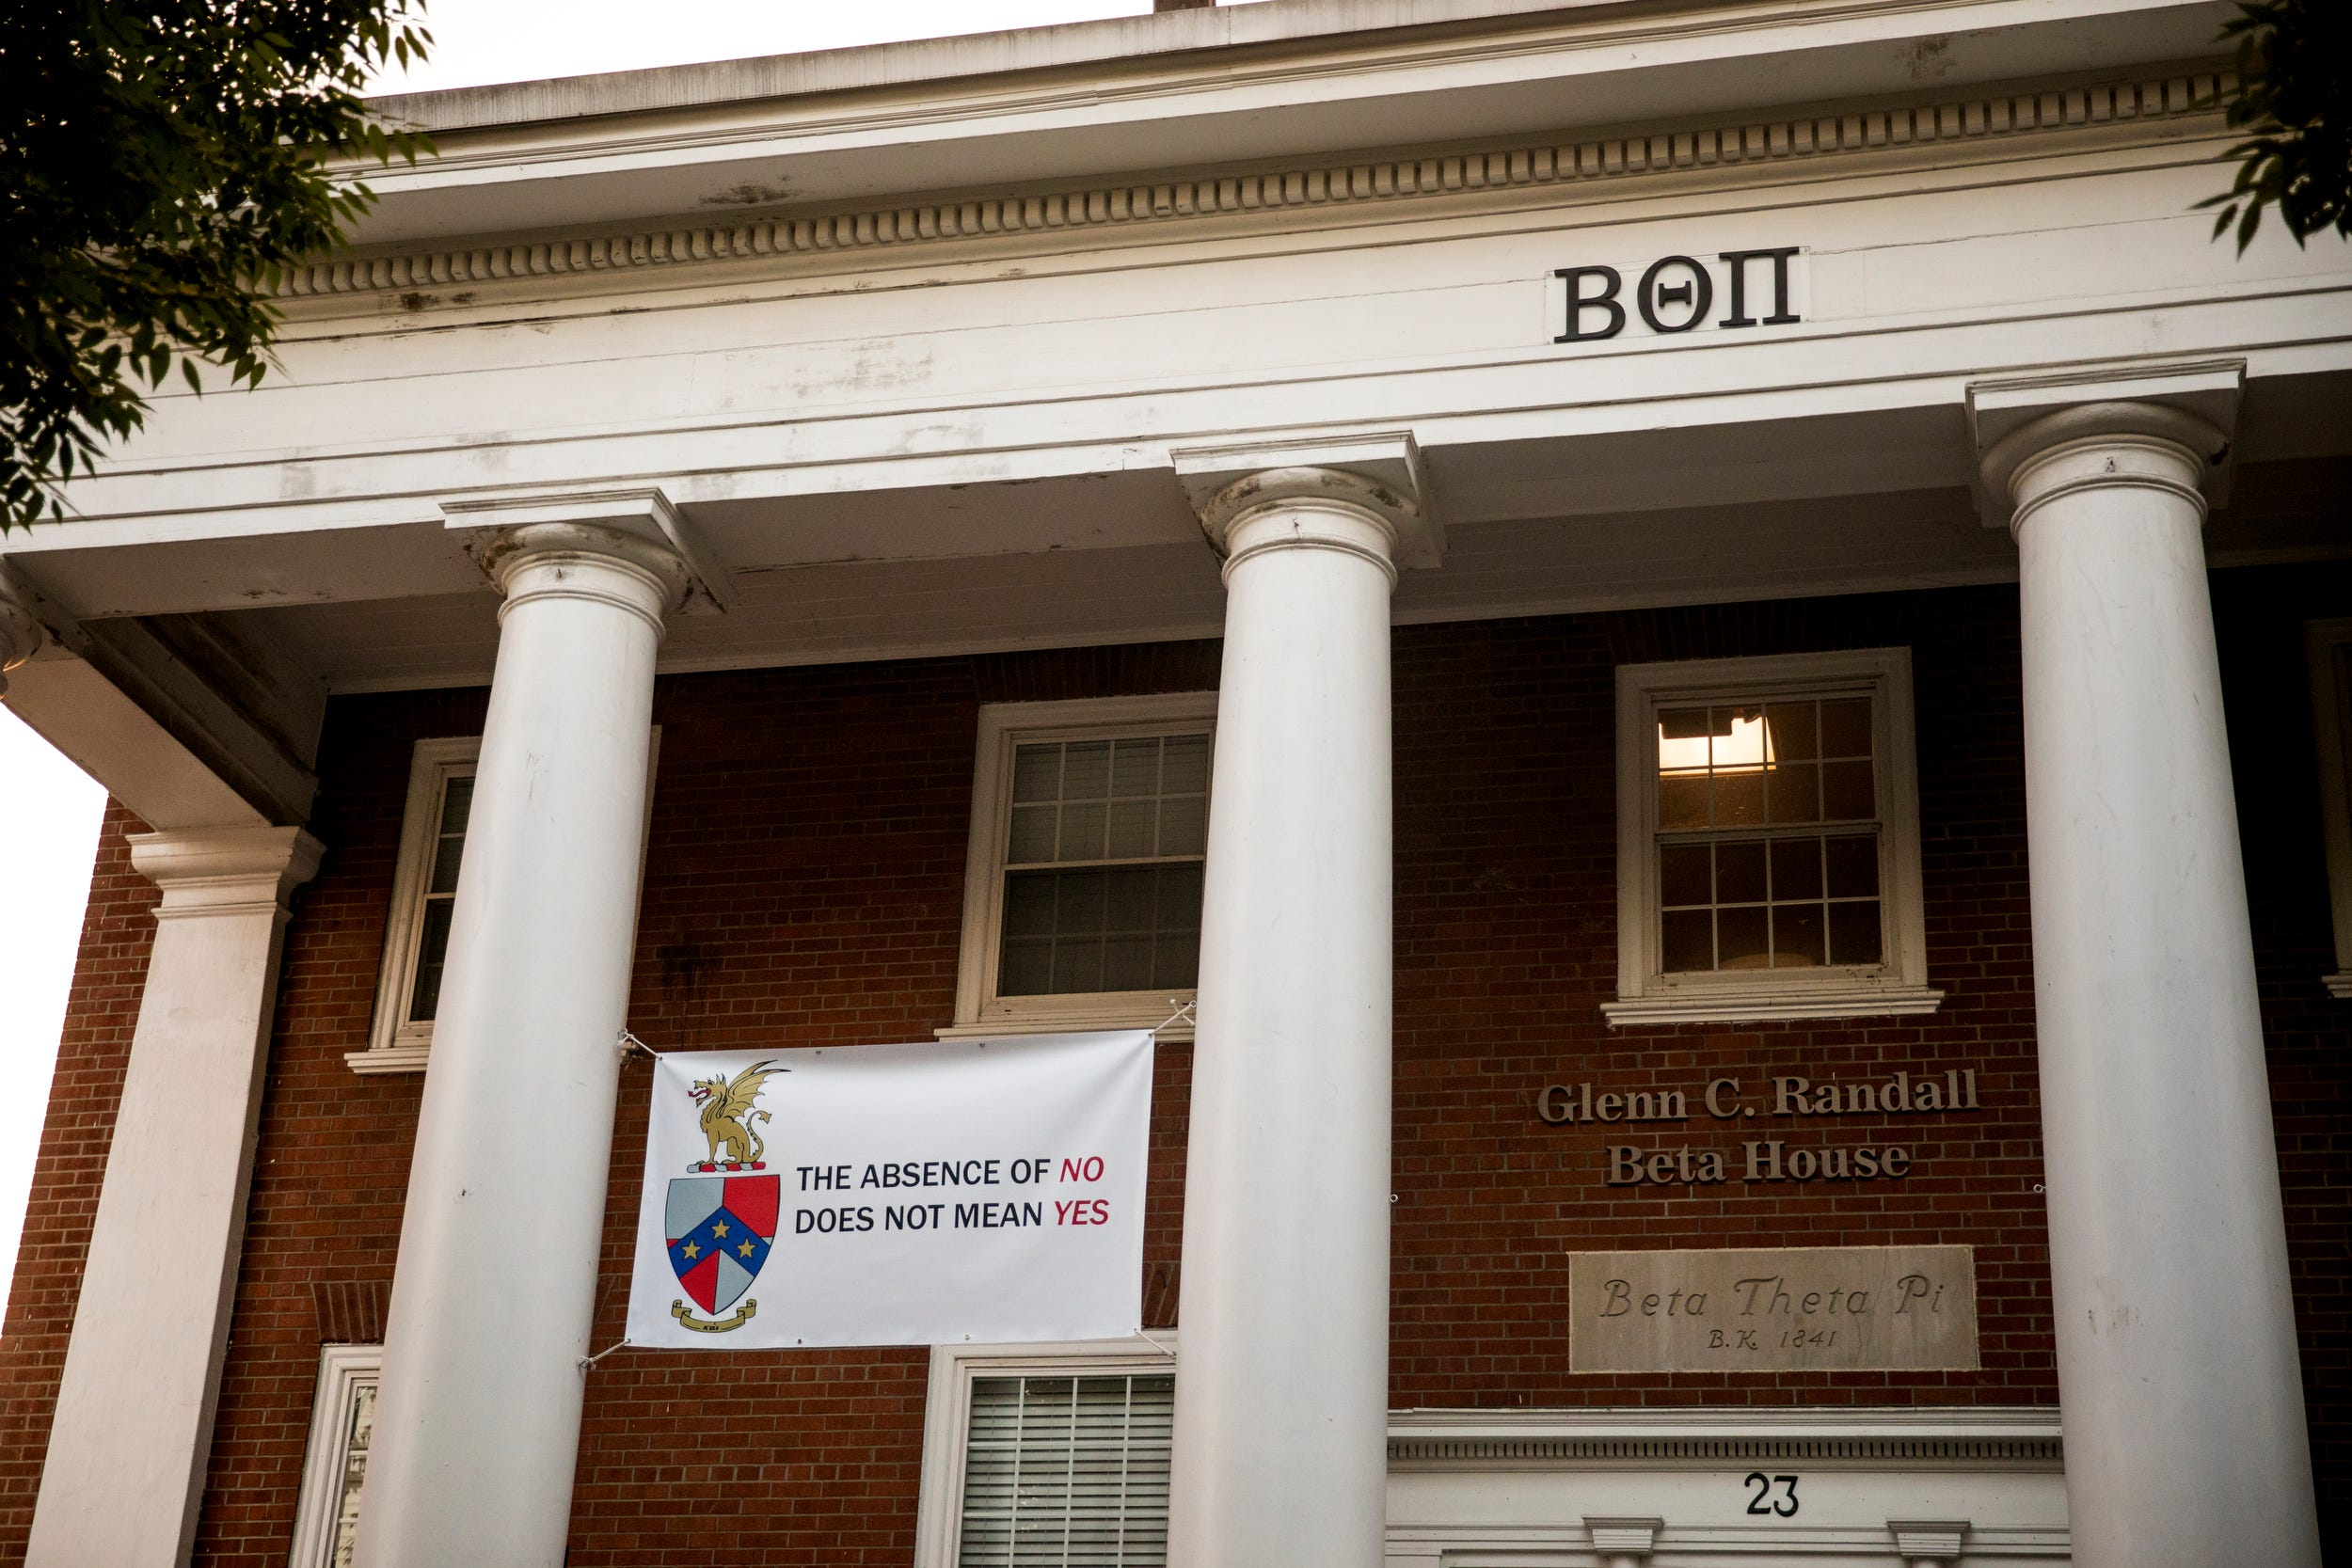 Breaking news: Ohio University suspends all frats, citing hazing allegations against 7 chapters